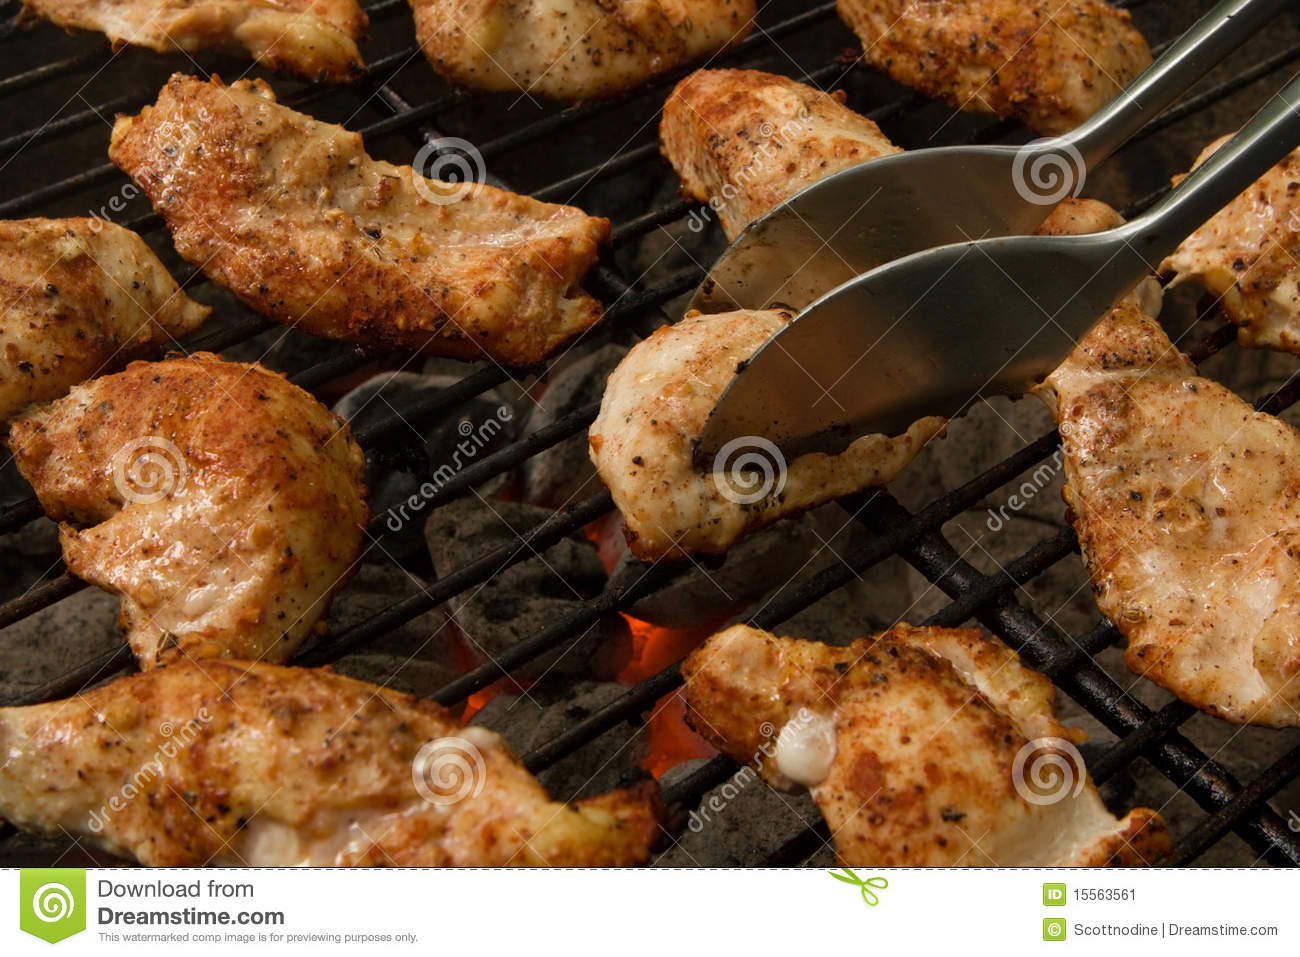 Grilled Chicken Tenders on a Charcoal Grill